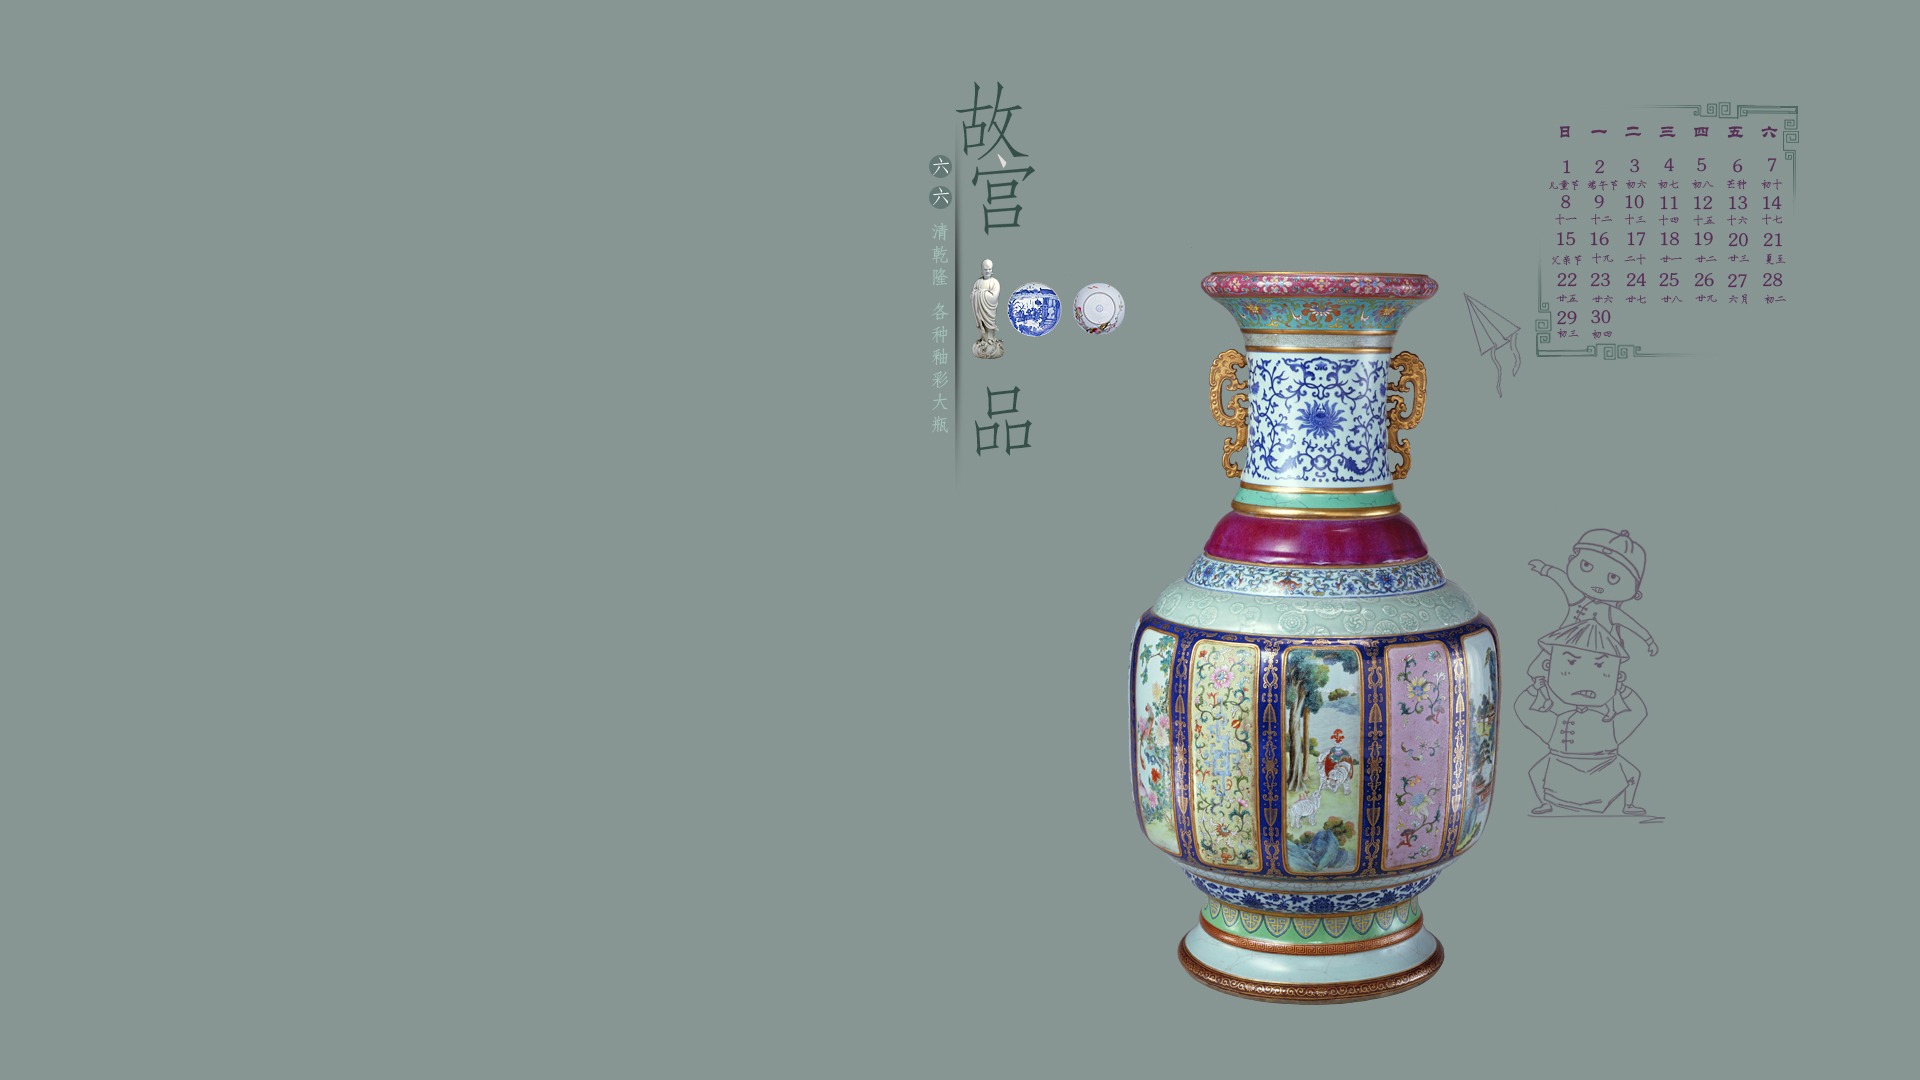 beautiful Large Vase with Variegated Glazes, Qianlong reign (1736-1795), Qing dynasty